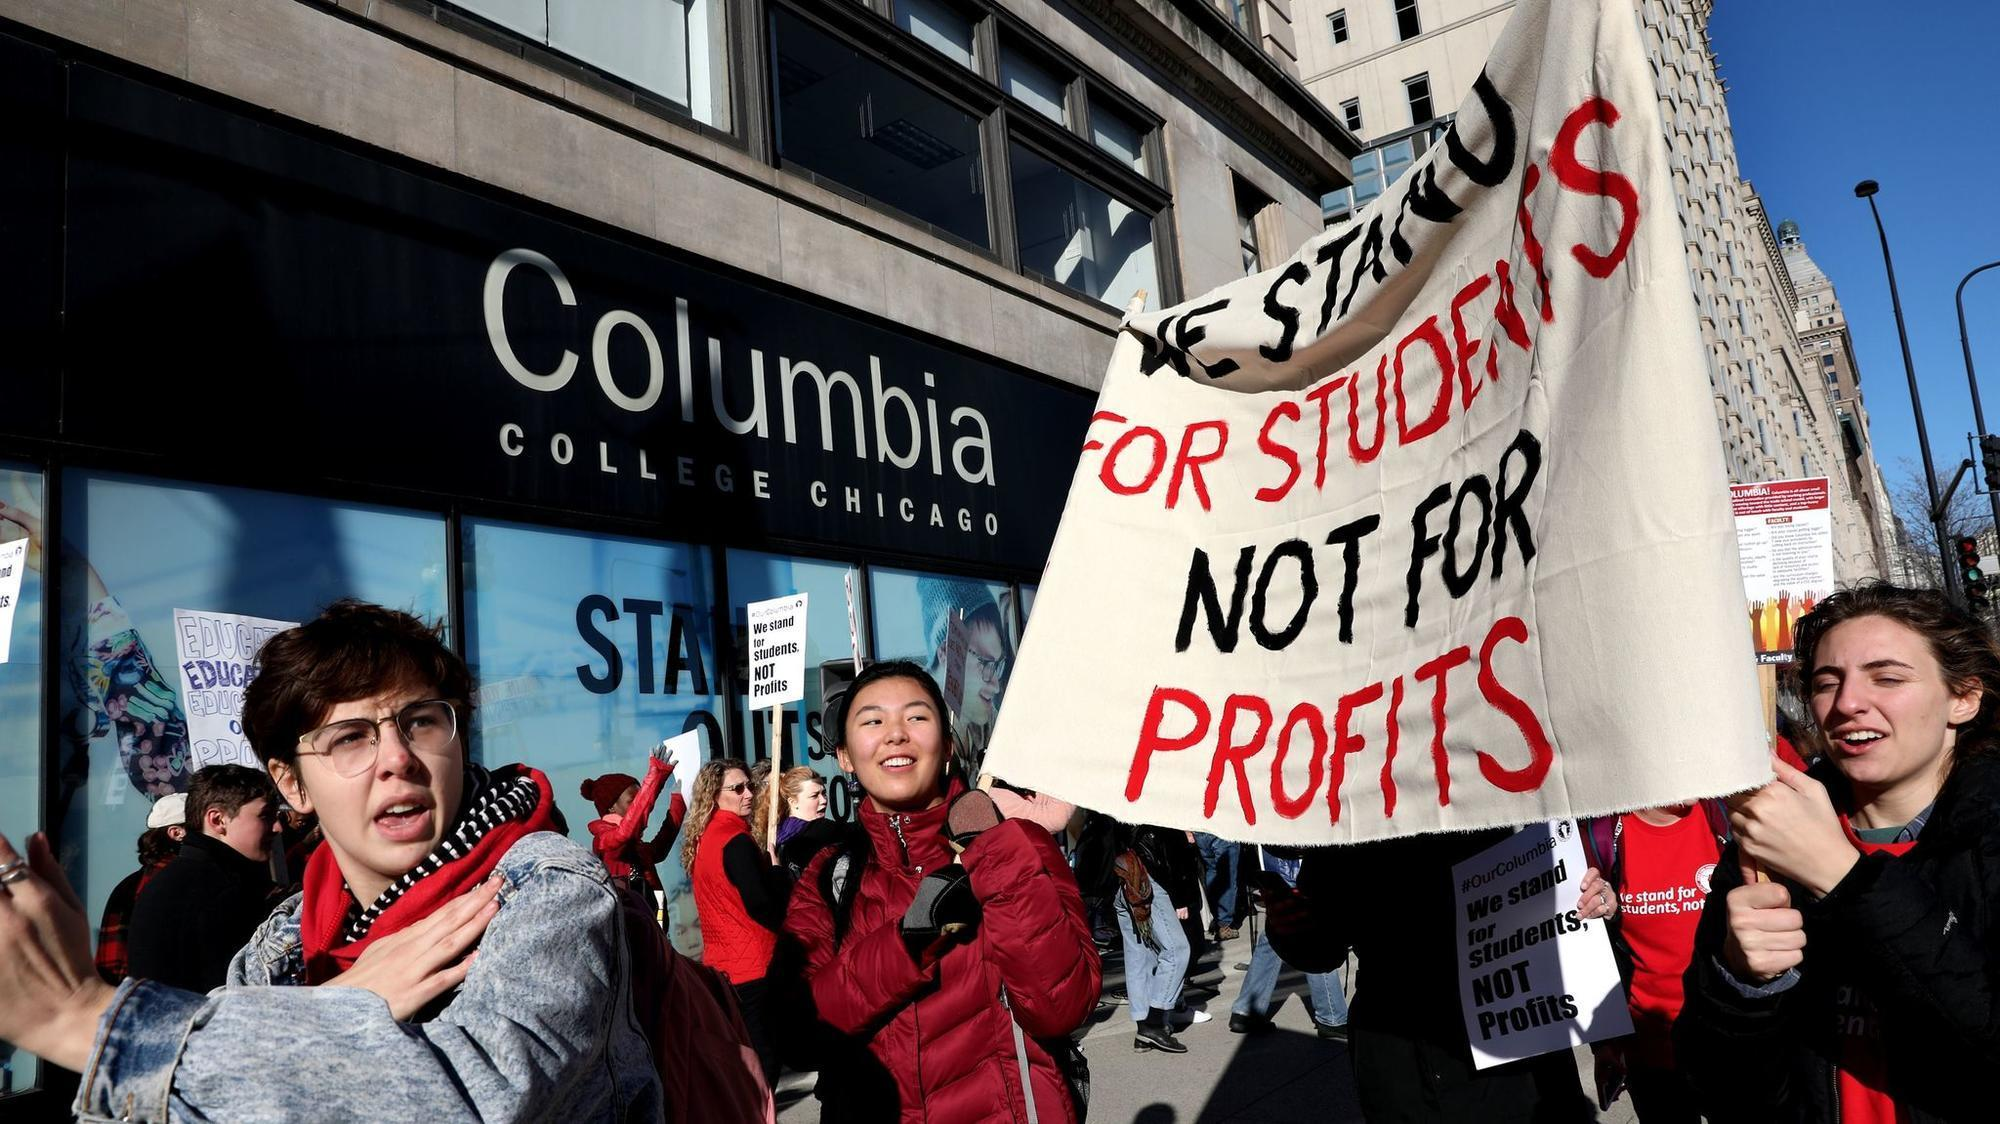 Part-time faculty at Columbia College begin strike, hit picket line in the Loop